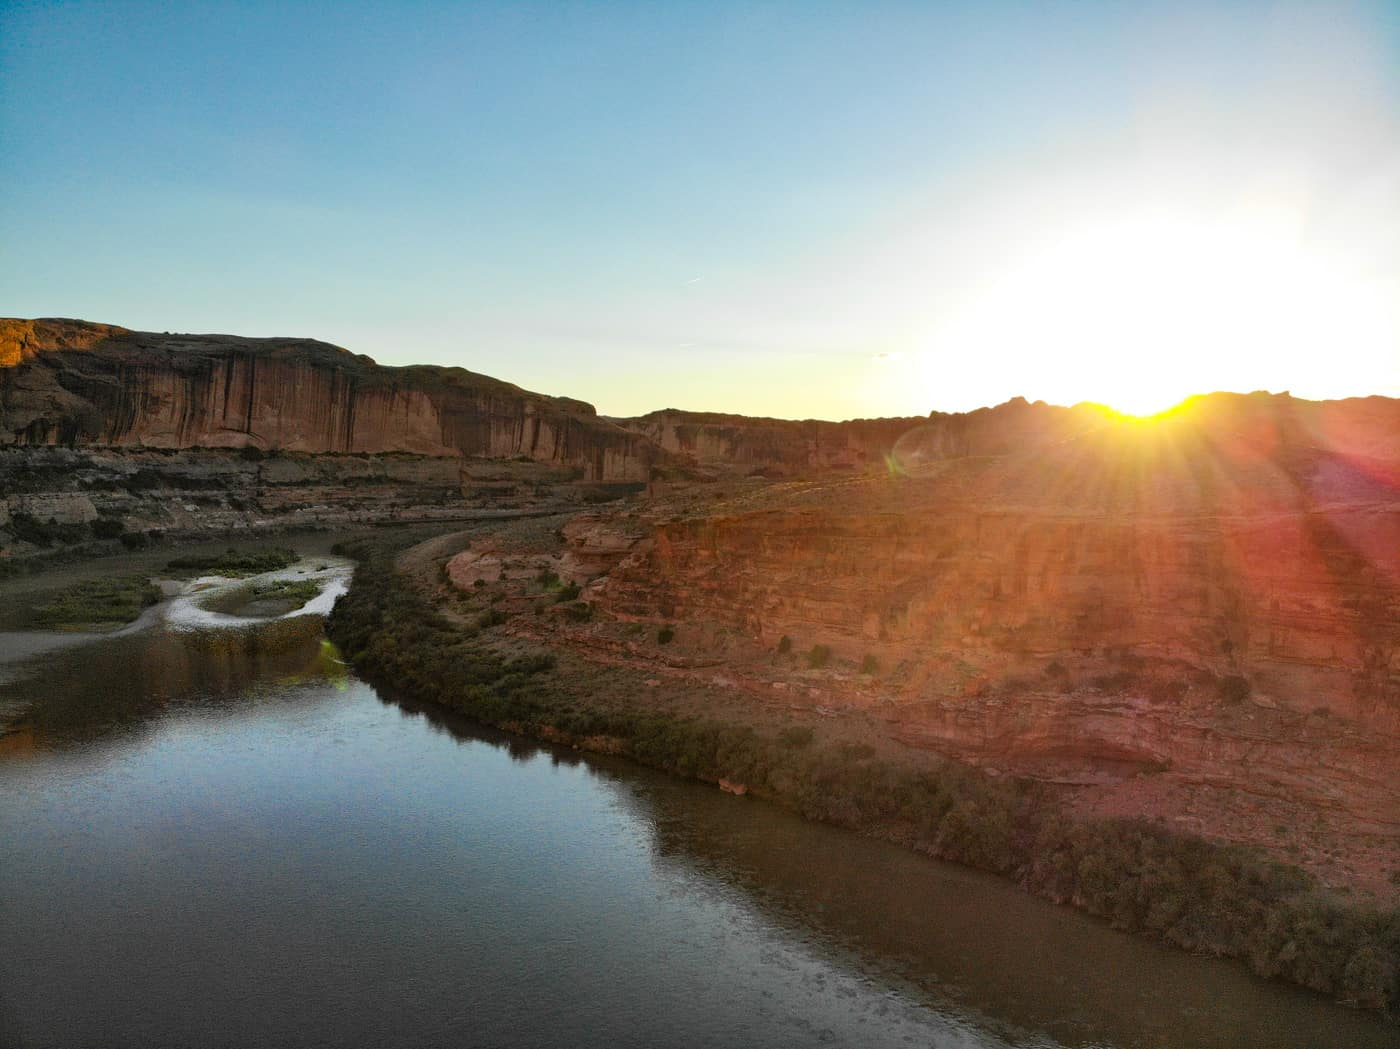 Aerial view of the Colorado River at sunset in Moab, Utah.